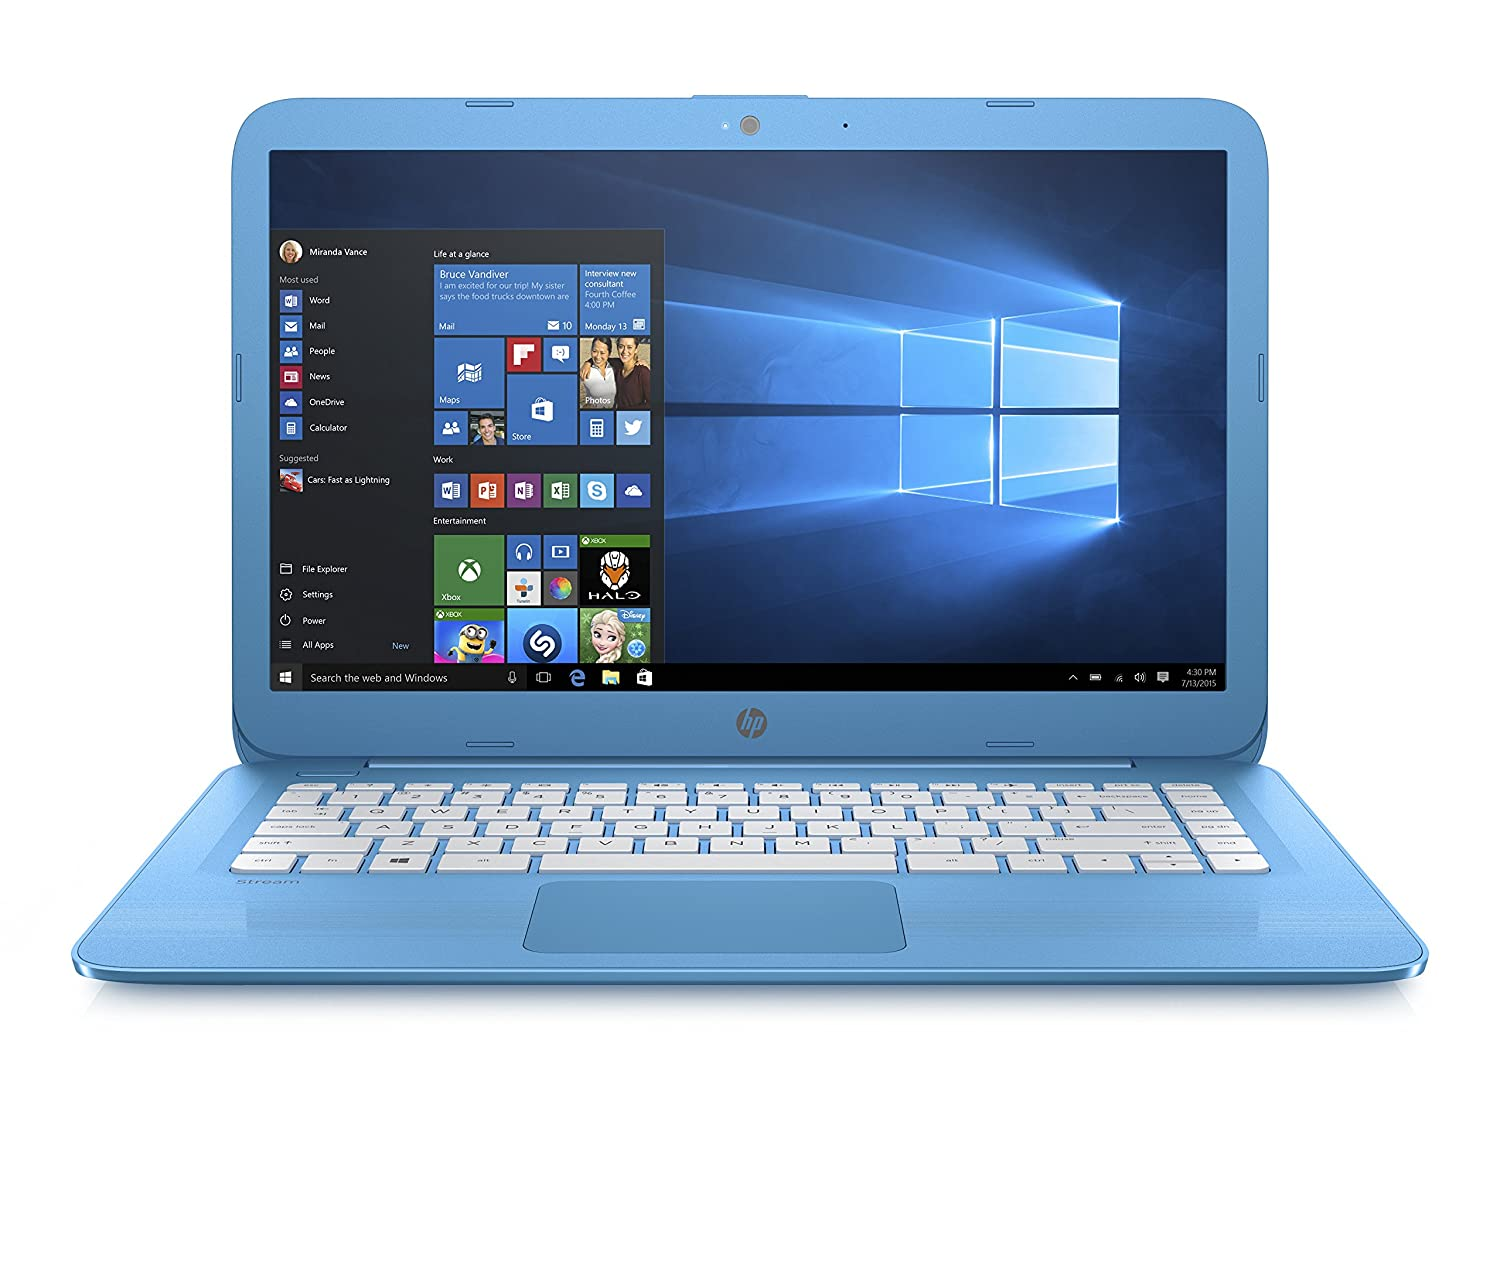 Hp Stream 14 Ax000na Inch Hd Laptop Aqua Blue Intel Celeron Of A Computer Diagram For Kids Personal N3060 4gb Ram 32gb Emmc 1tb Onedrive And Office 365 1 Year Subscription Included